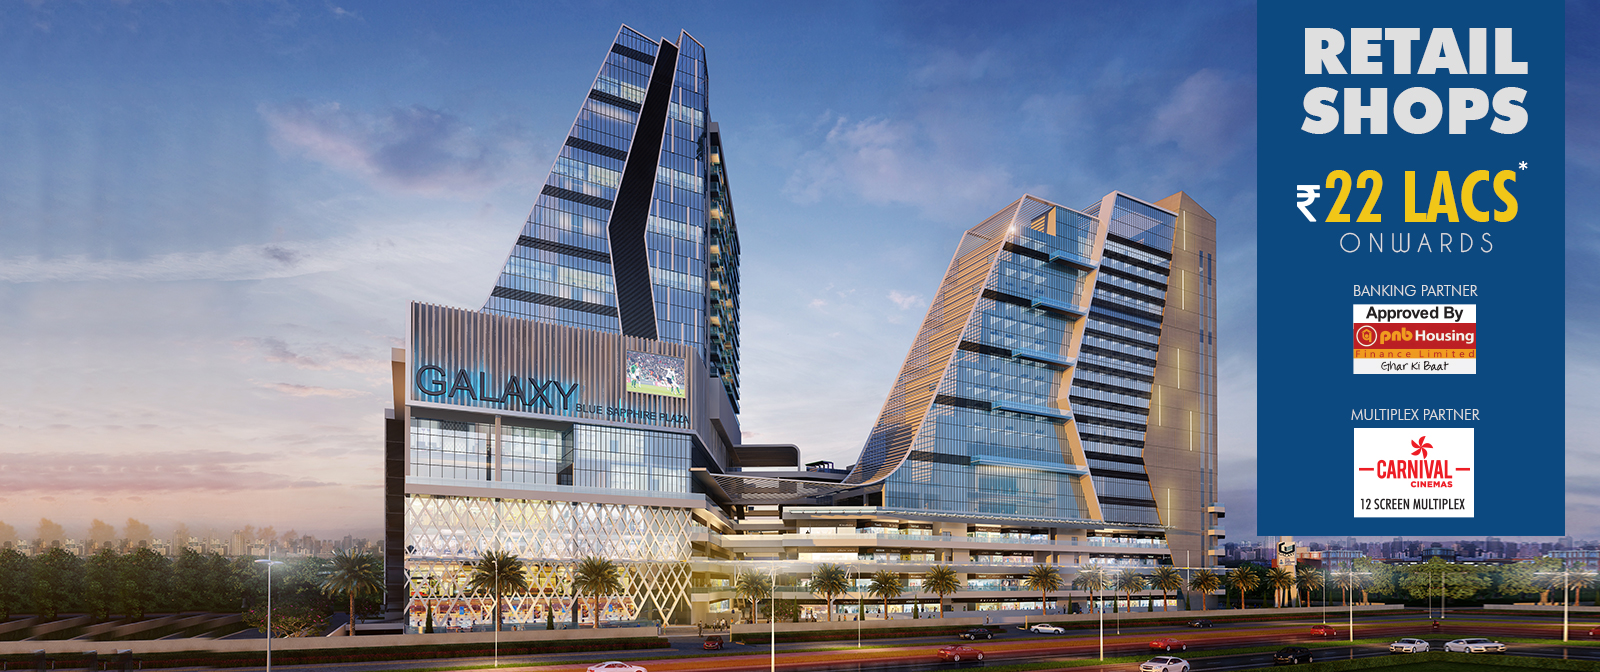 Image for Galaxy Blue Sapphire Plaza Retail Shops Available only at 22 Lacs